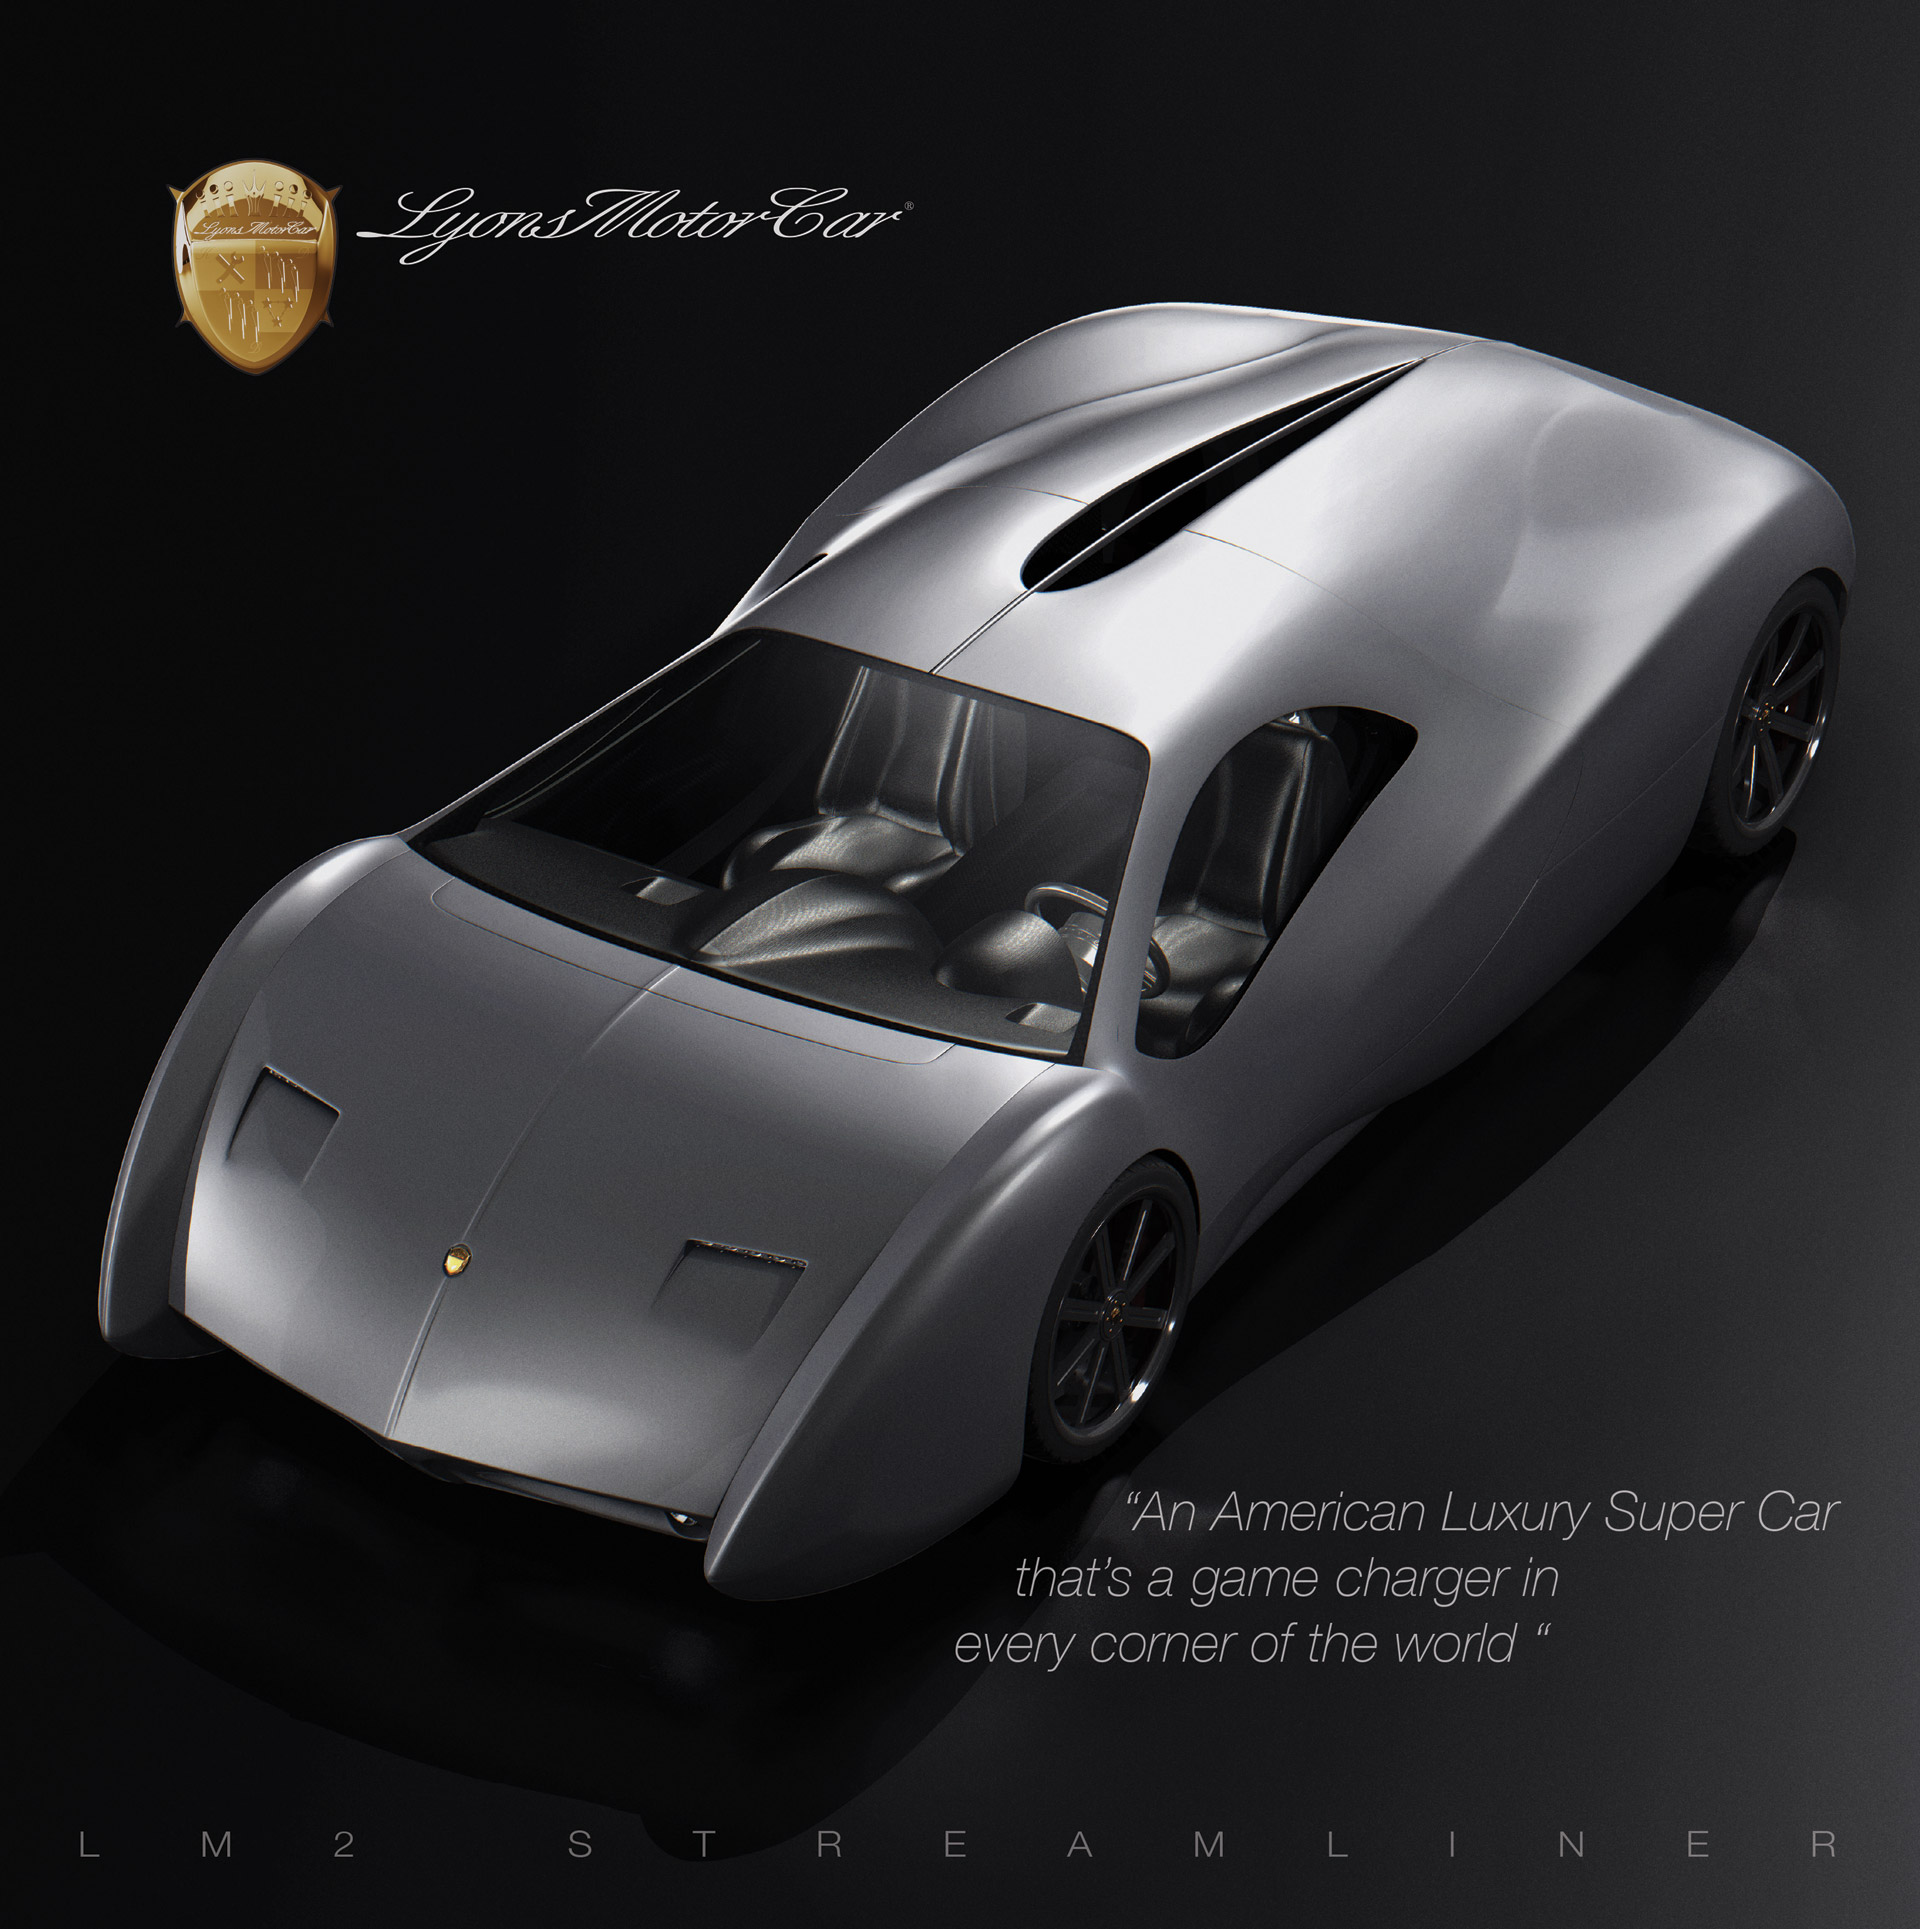 New Supercars: American Startup Bringing 1,700-HP LM2 Streamliner